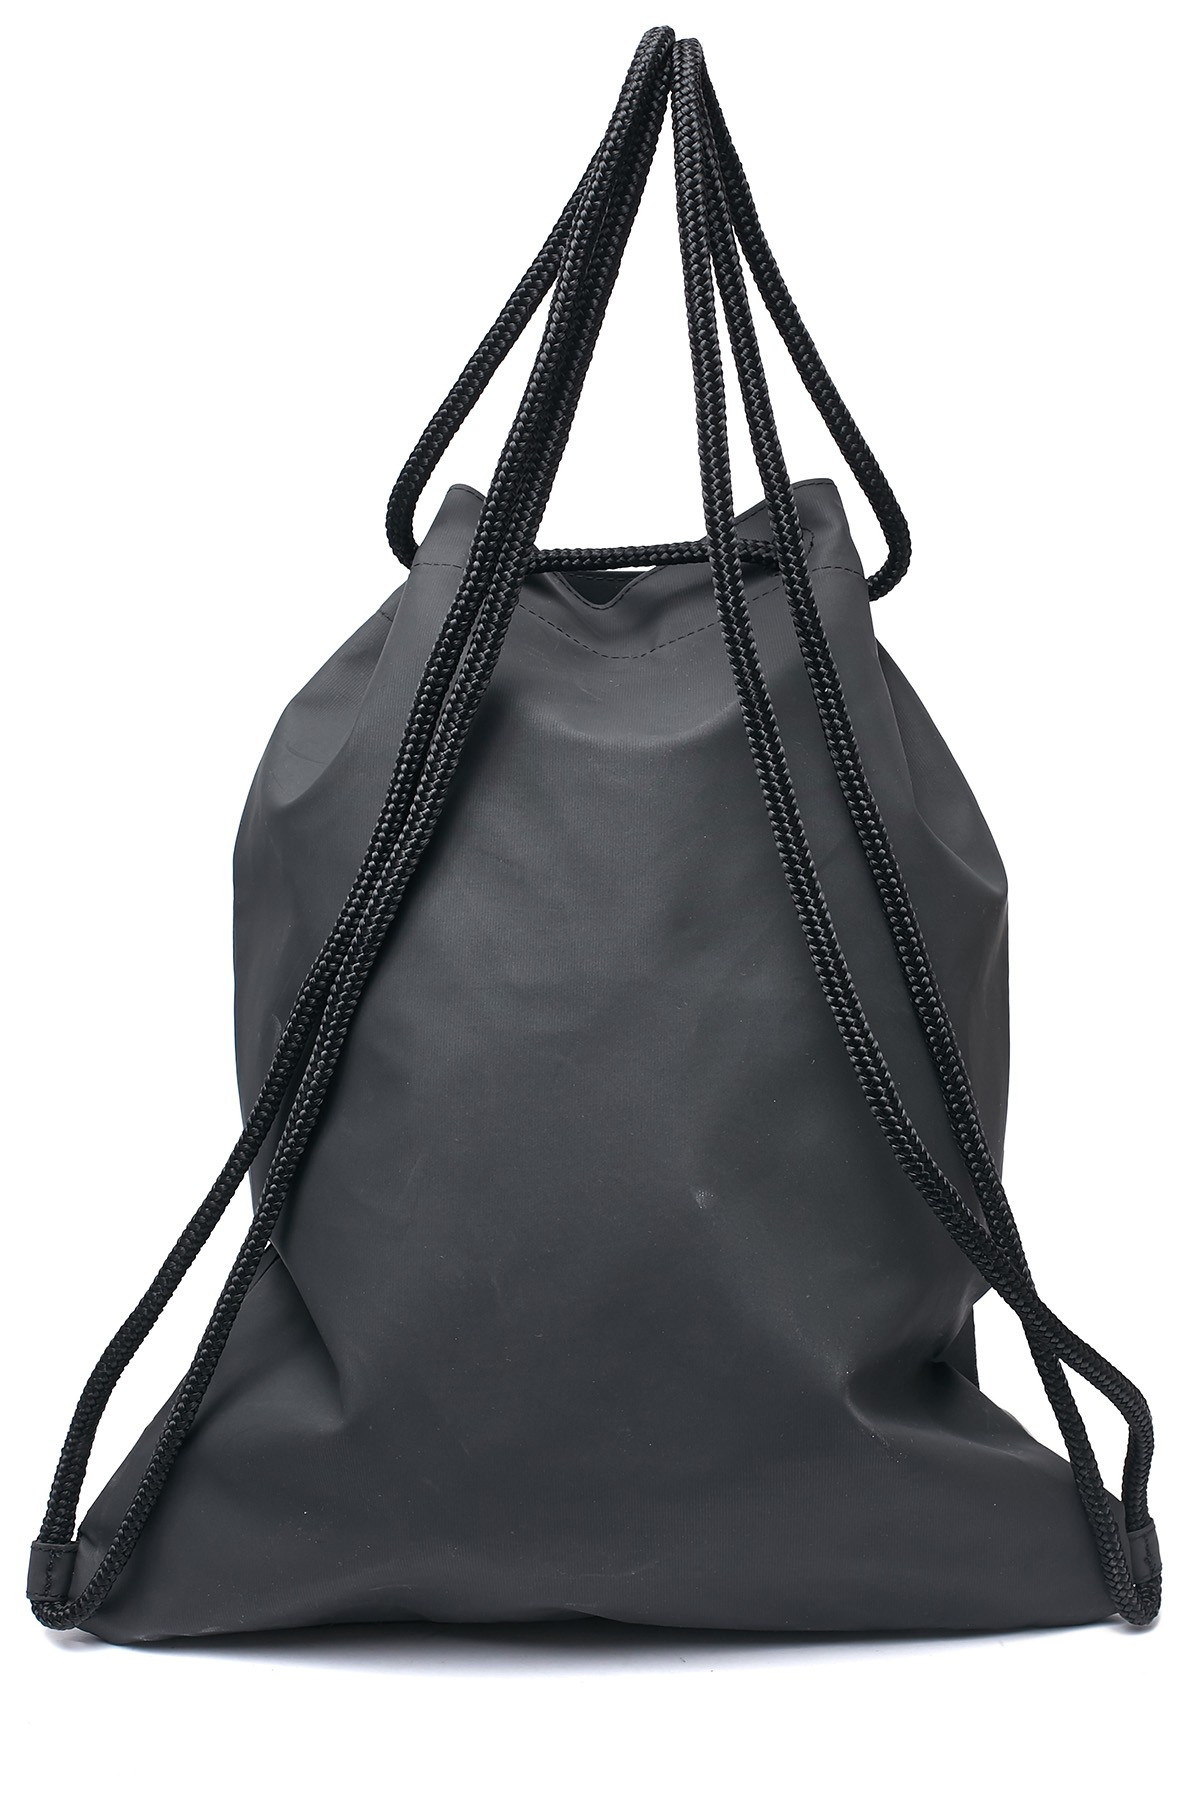 ADIDAS BUCKET GYMSACK BLACK (2)